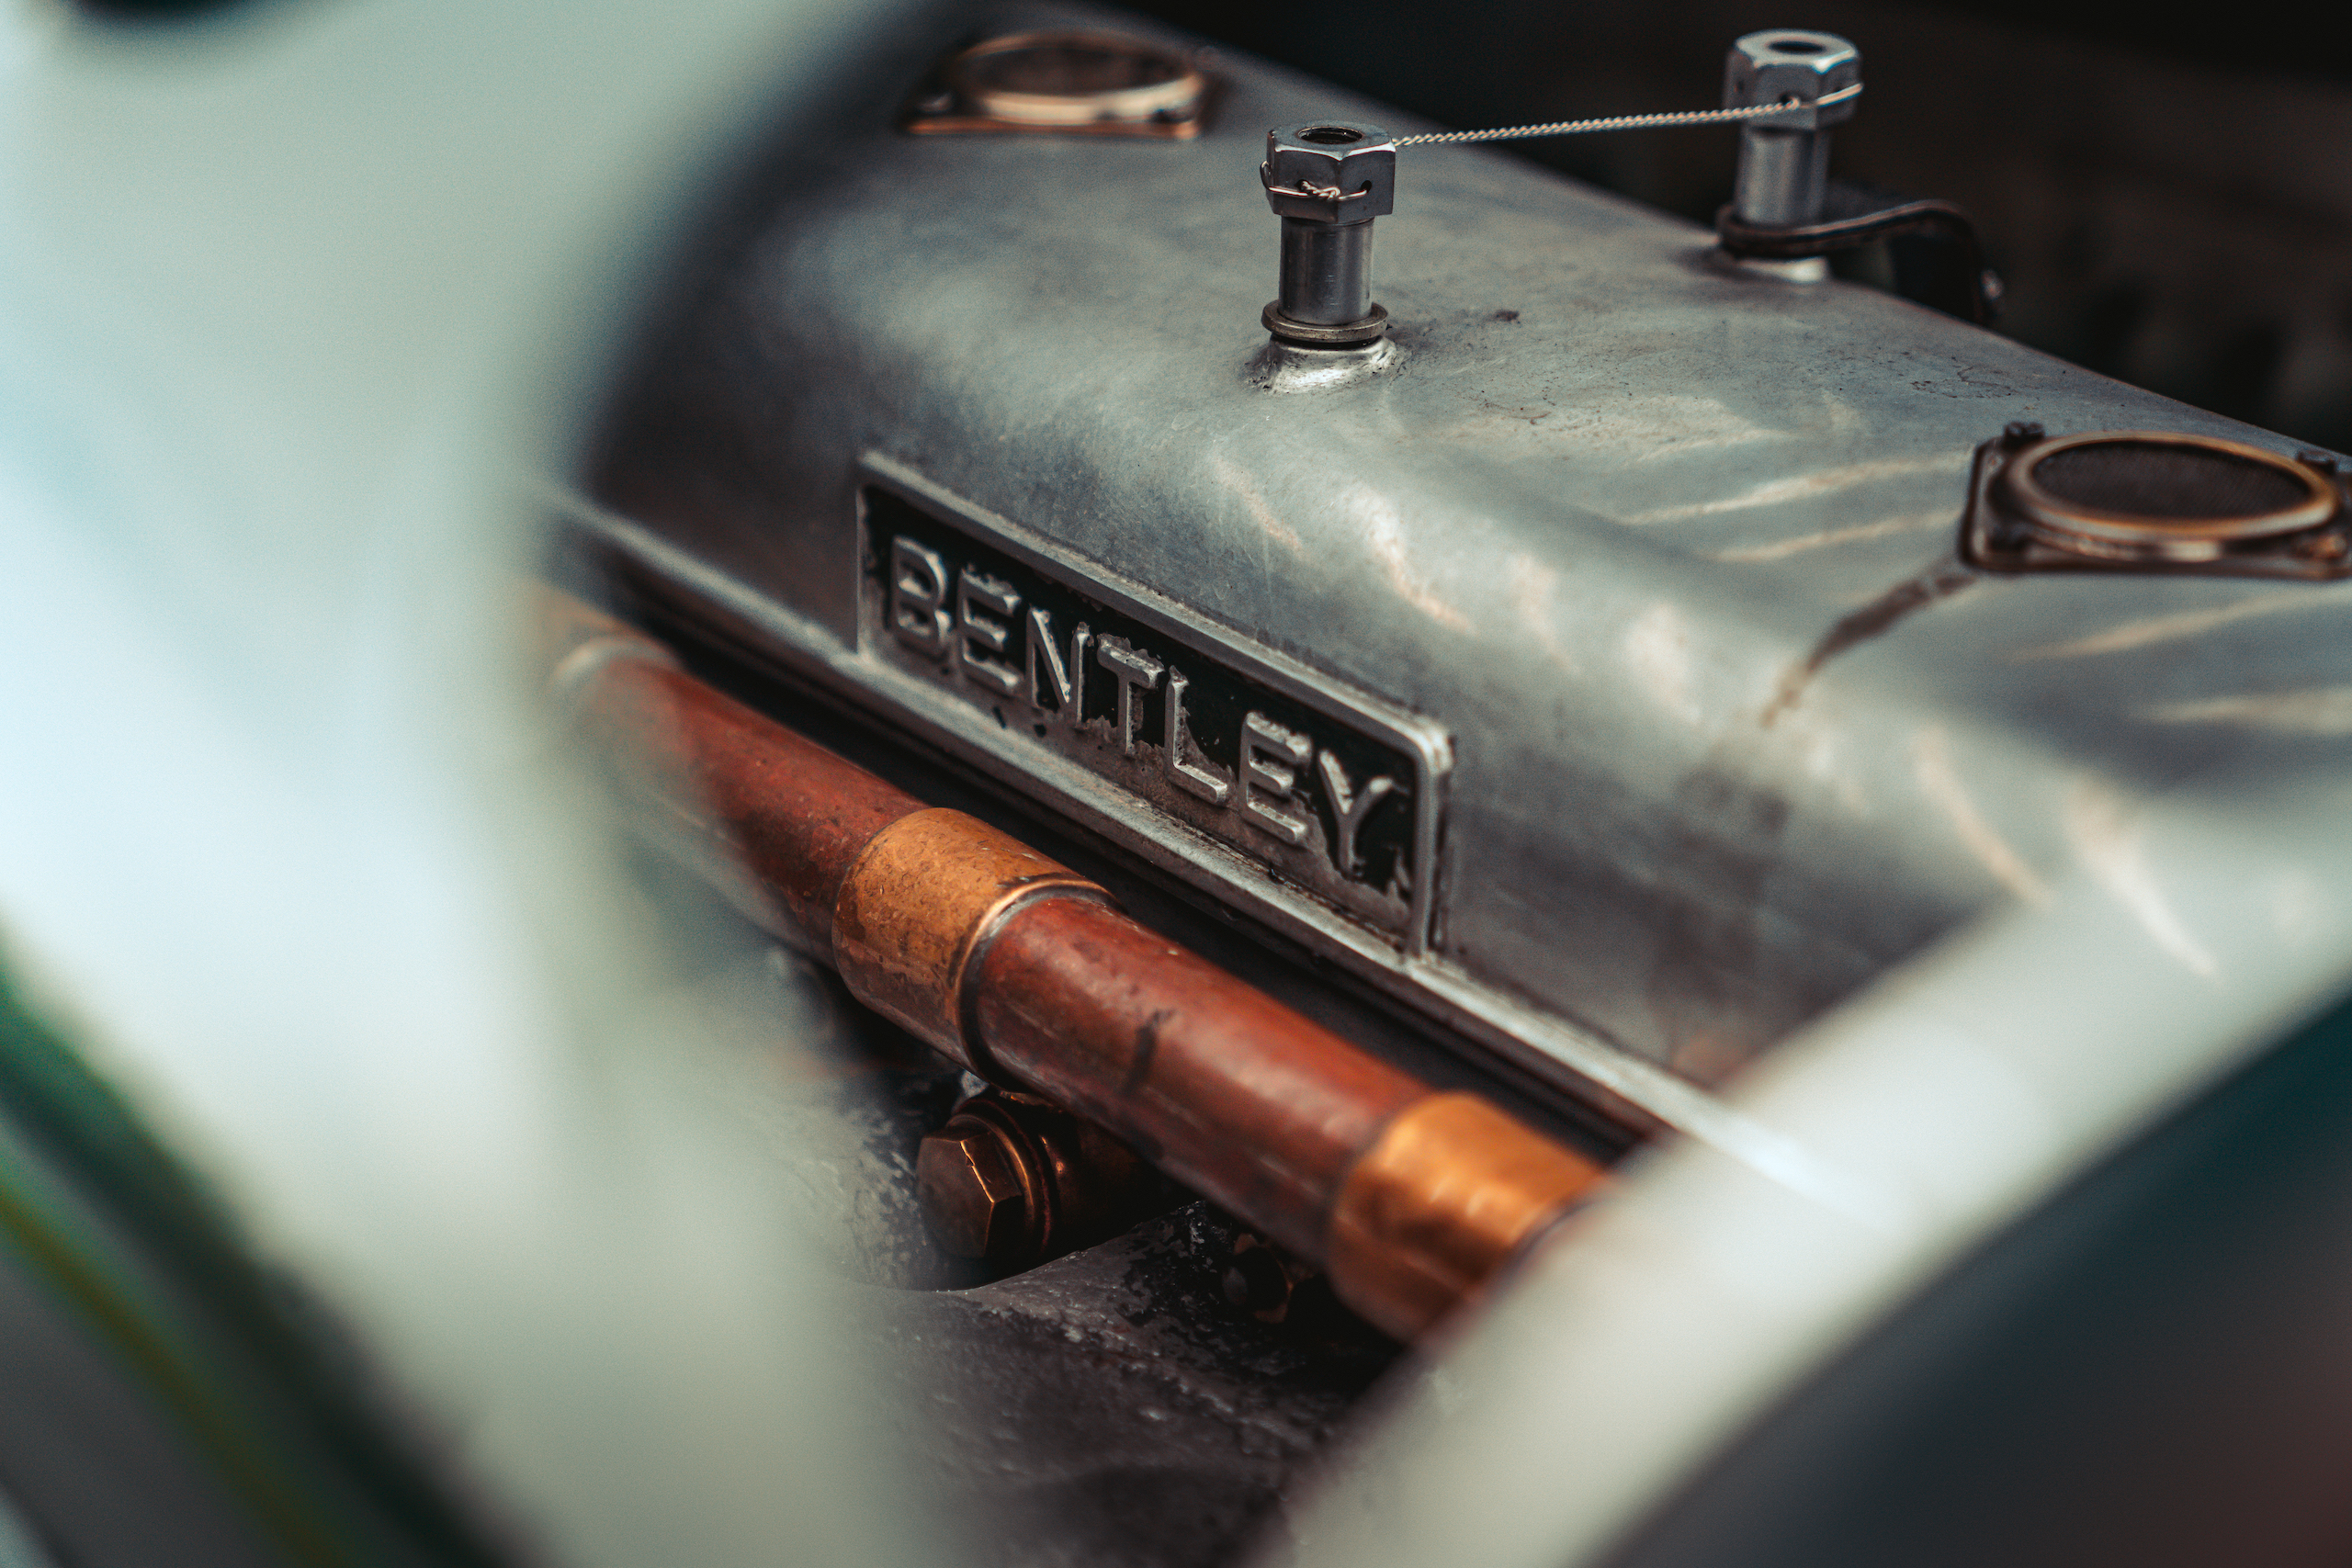 Blower Bentley engine cover detail